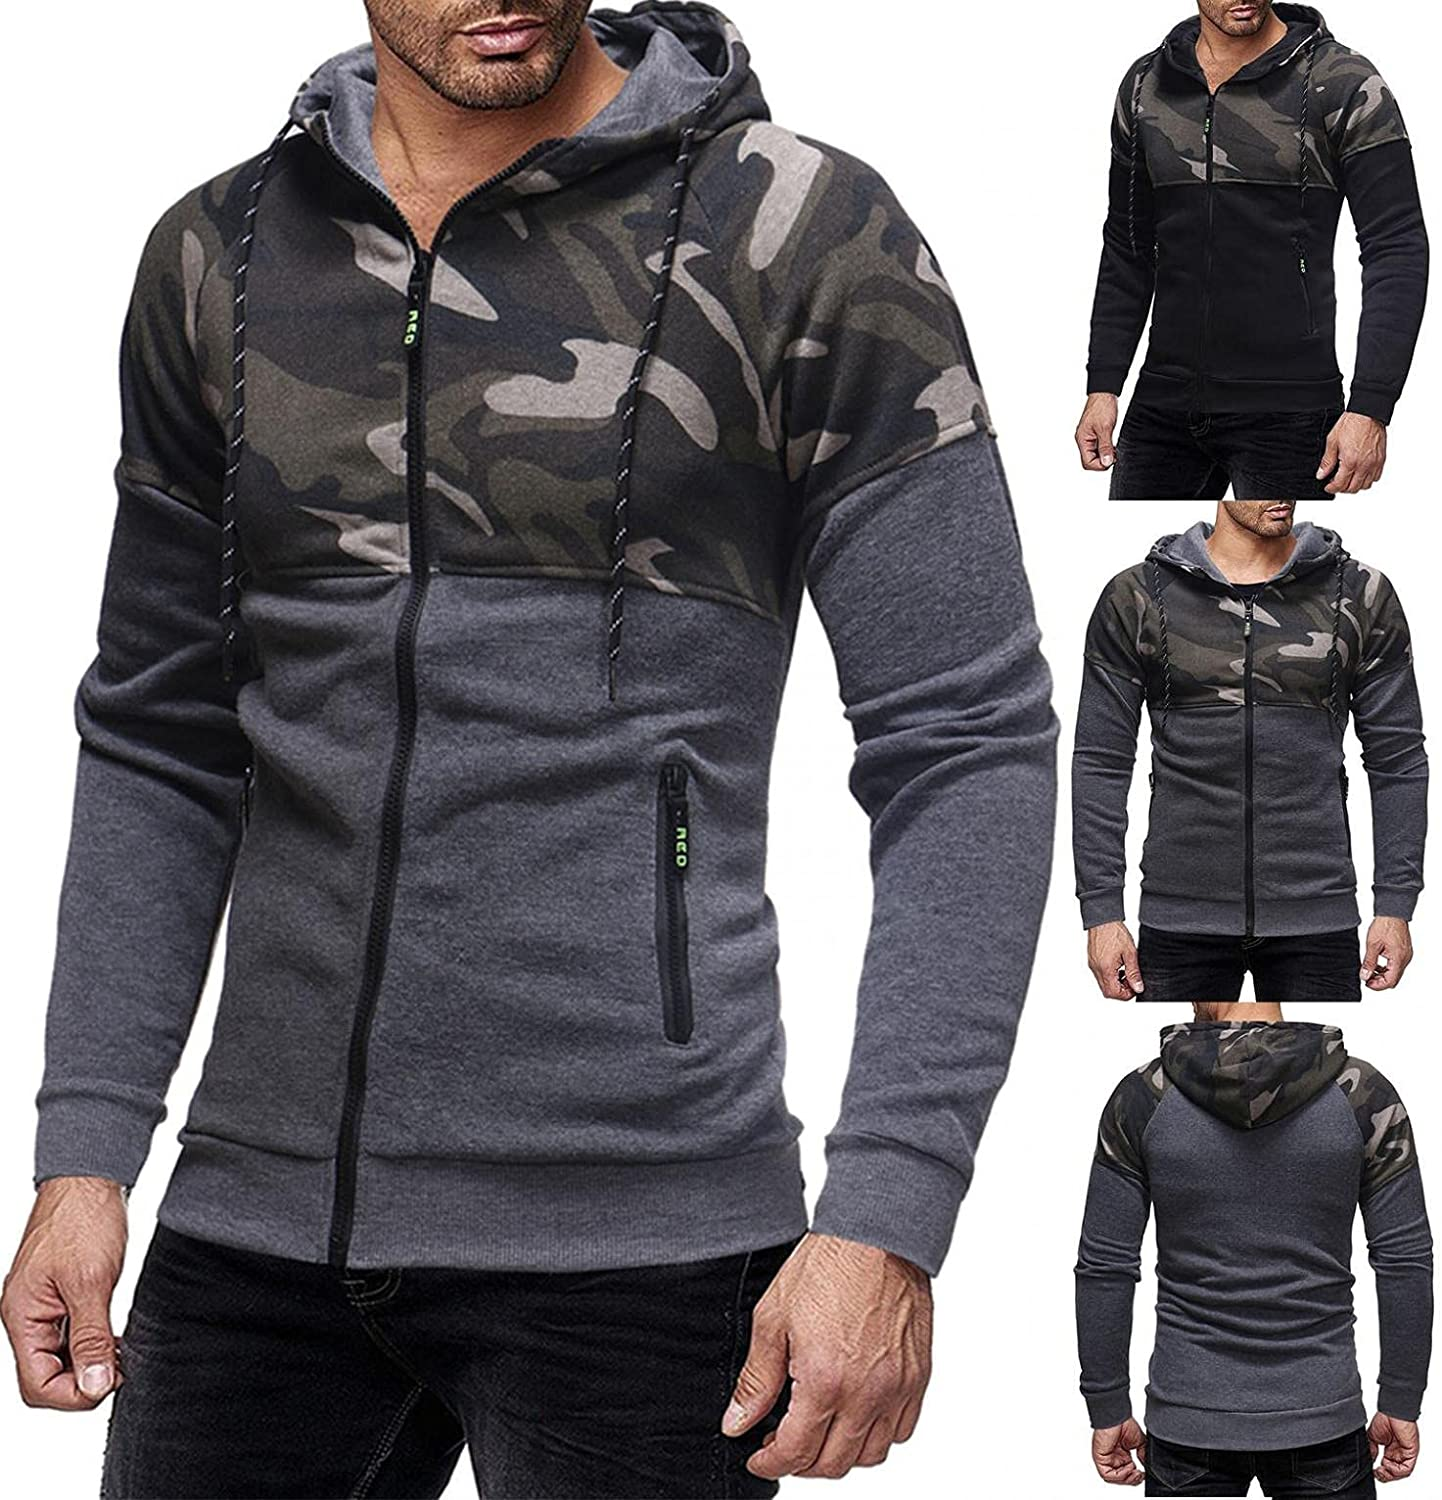 Men's Hoodie Camouflage Patchwork Athletic Sweatshirt Long Sleeve Drawstring Workout Pullover Tops Gym Hooded with Pocket